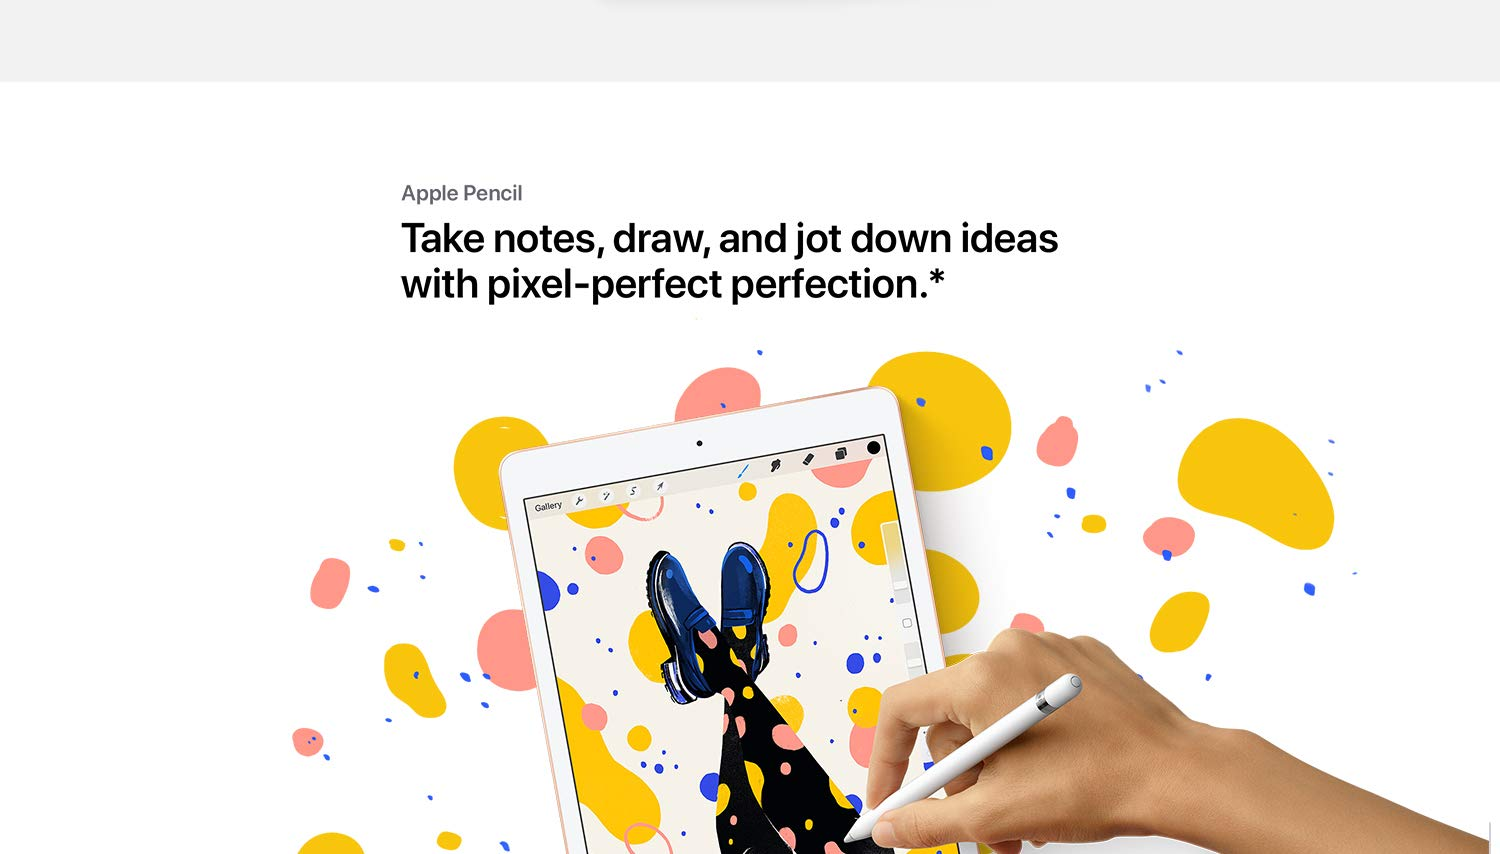 Apple Pencil Take notes, draw, and jot down ideas with pixel-perfect perfection.